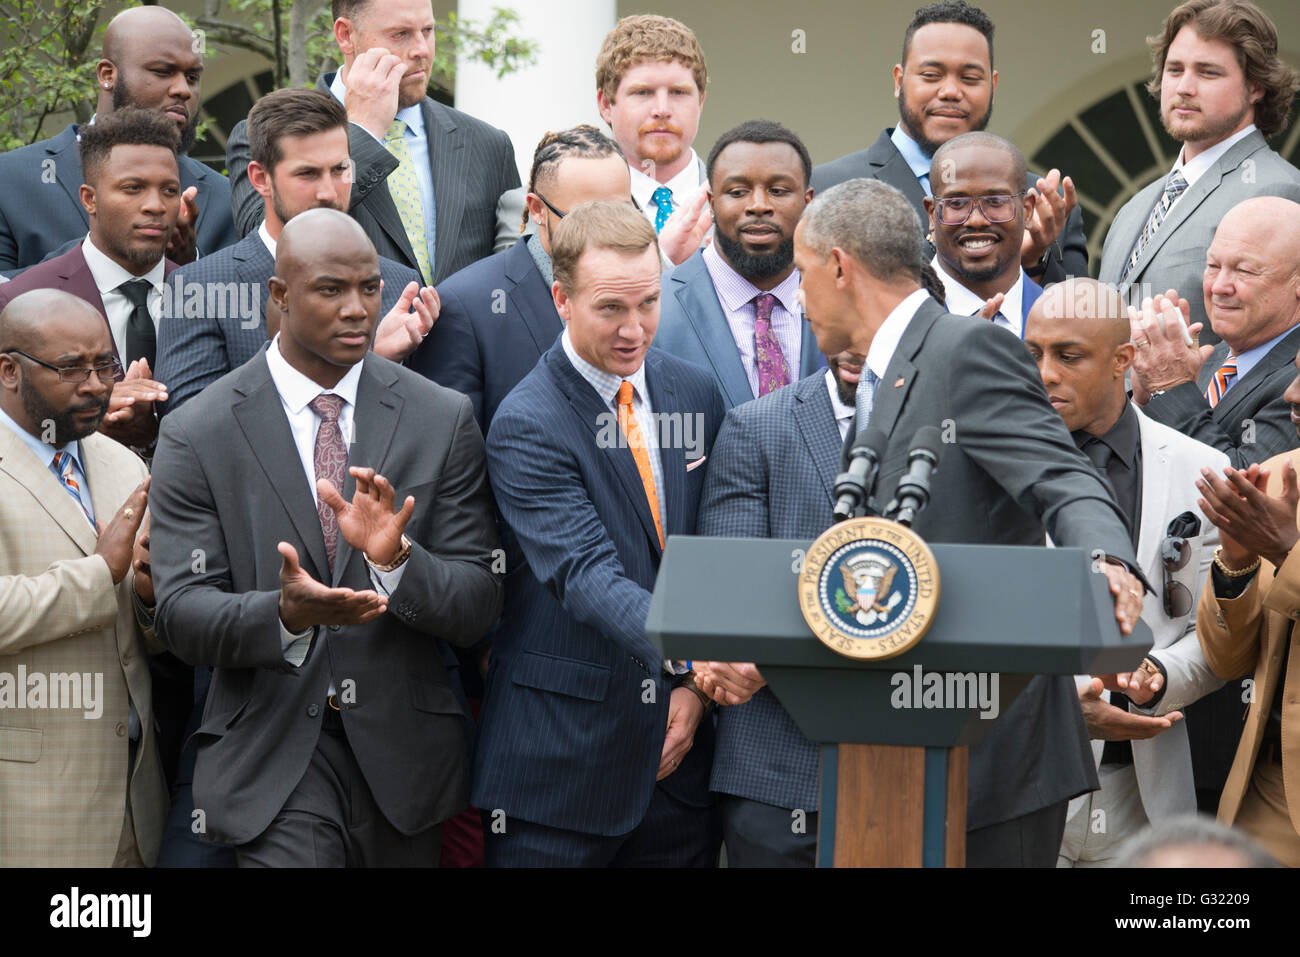 Washington DC, USA. 06th June, 2016. President Obama holds up a Denver Broncos jersey given to him by the 50th Super - Stock Image